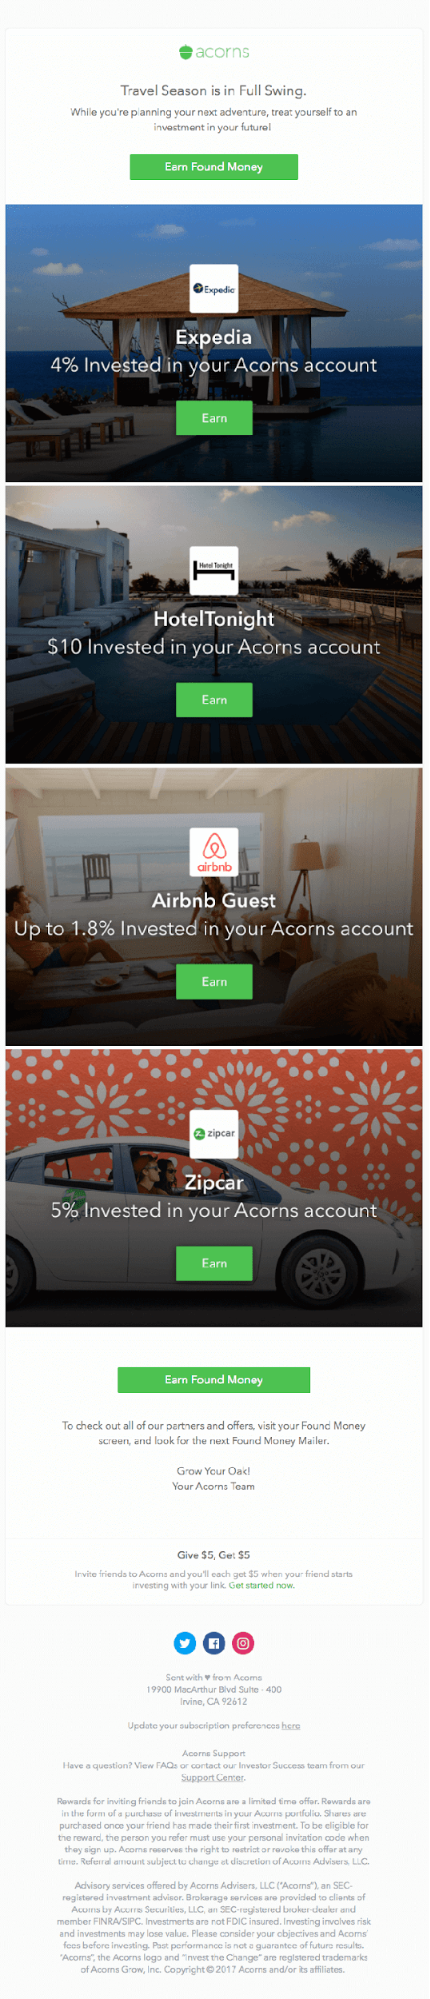 Acorns Partner Referral Email